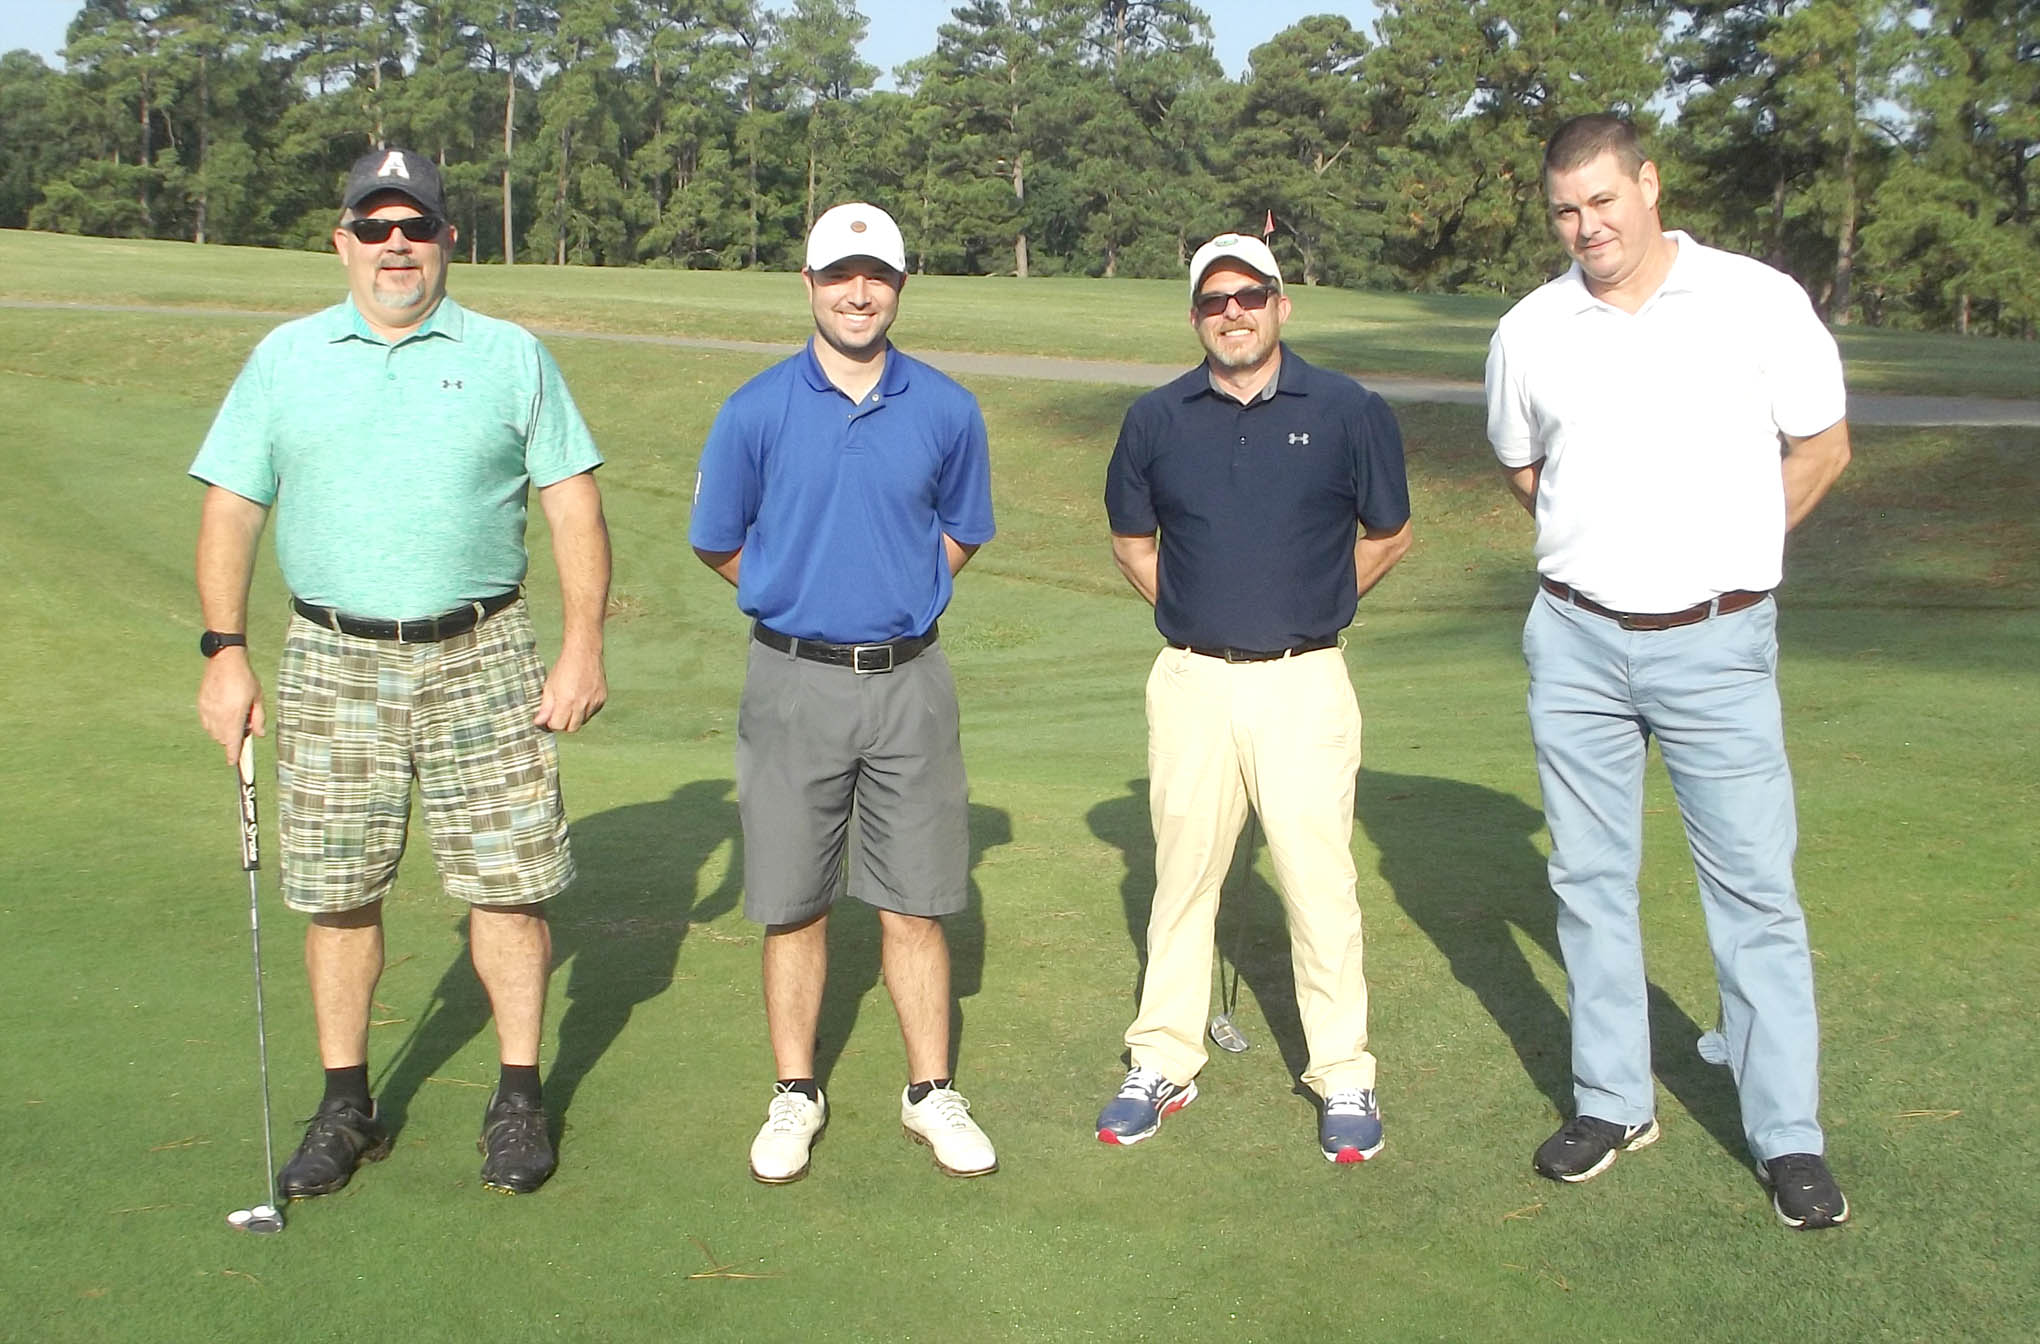 Click to enlarge,  The team of Micah Lawrence, Bo Crooks, Dale Bunnell, and Ray Blackburn won the second flight of the morning tournament of the CCCC Foundation Lee Golf Classic.